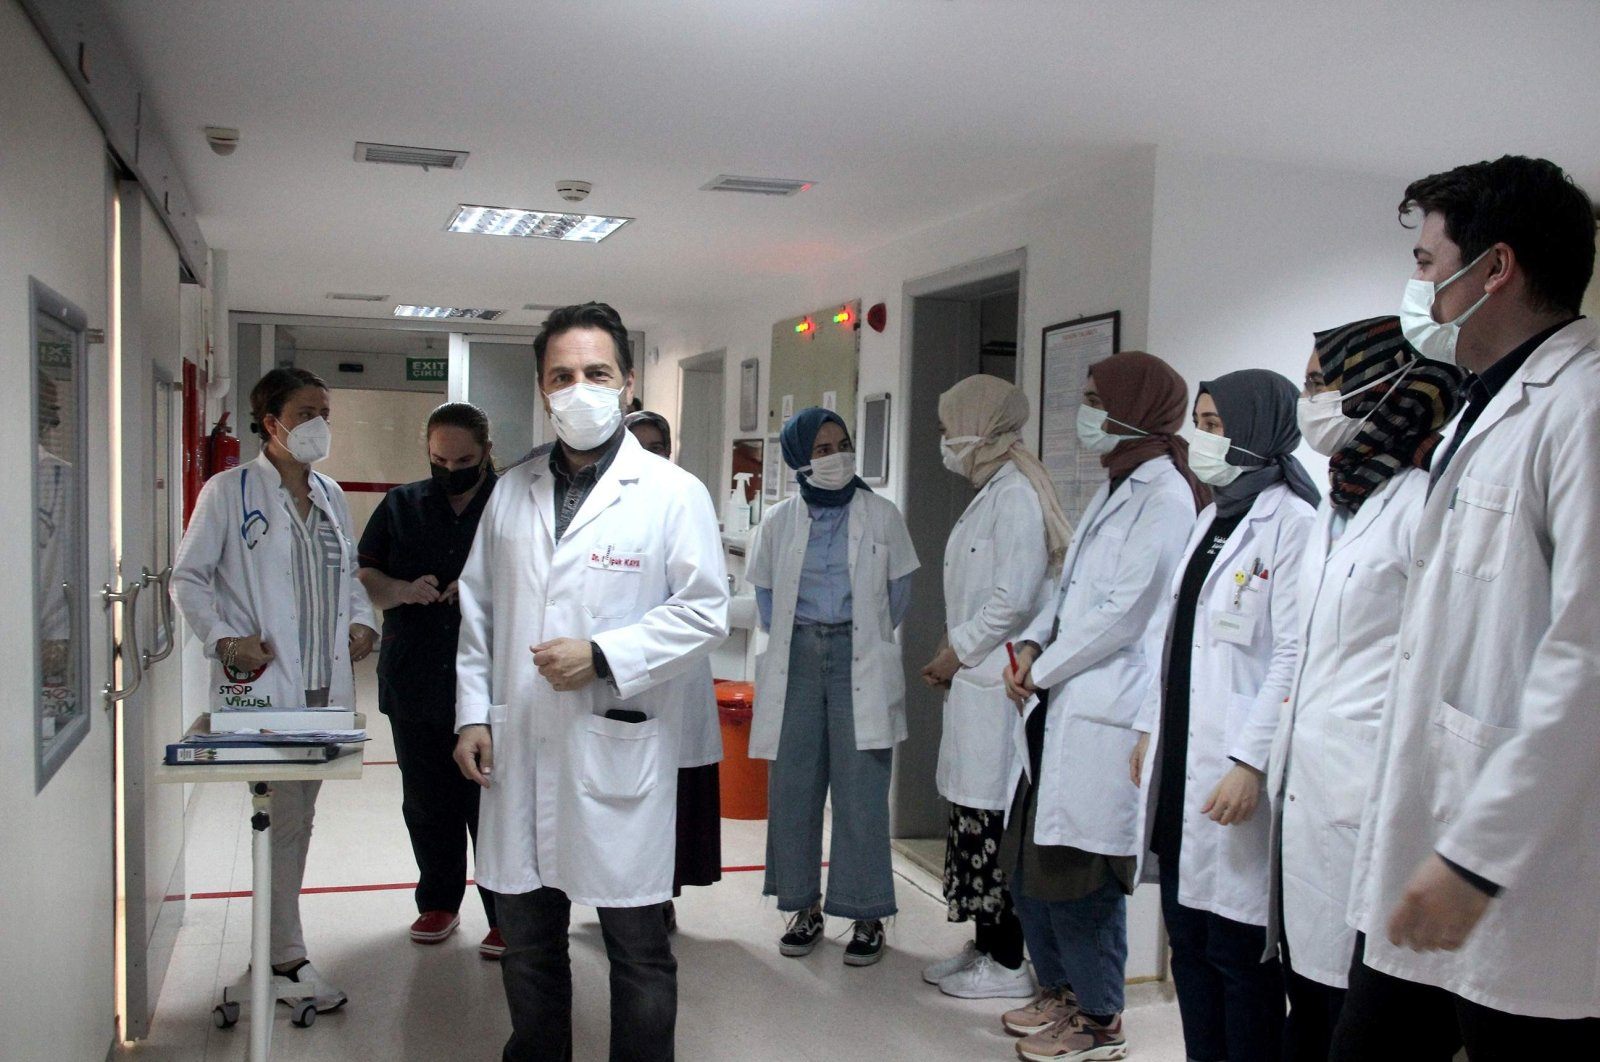 Doctors and other health care staff line the hallway at the hospital where the patient is being treated, in Trabzon, northern Turkey, June 3, 2021. (İHA PHOTO)